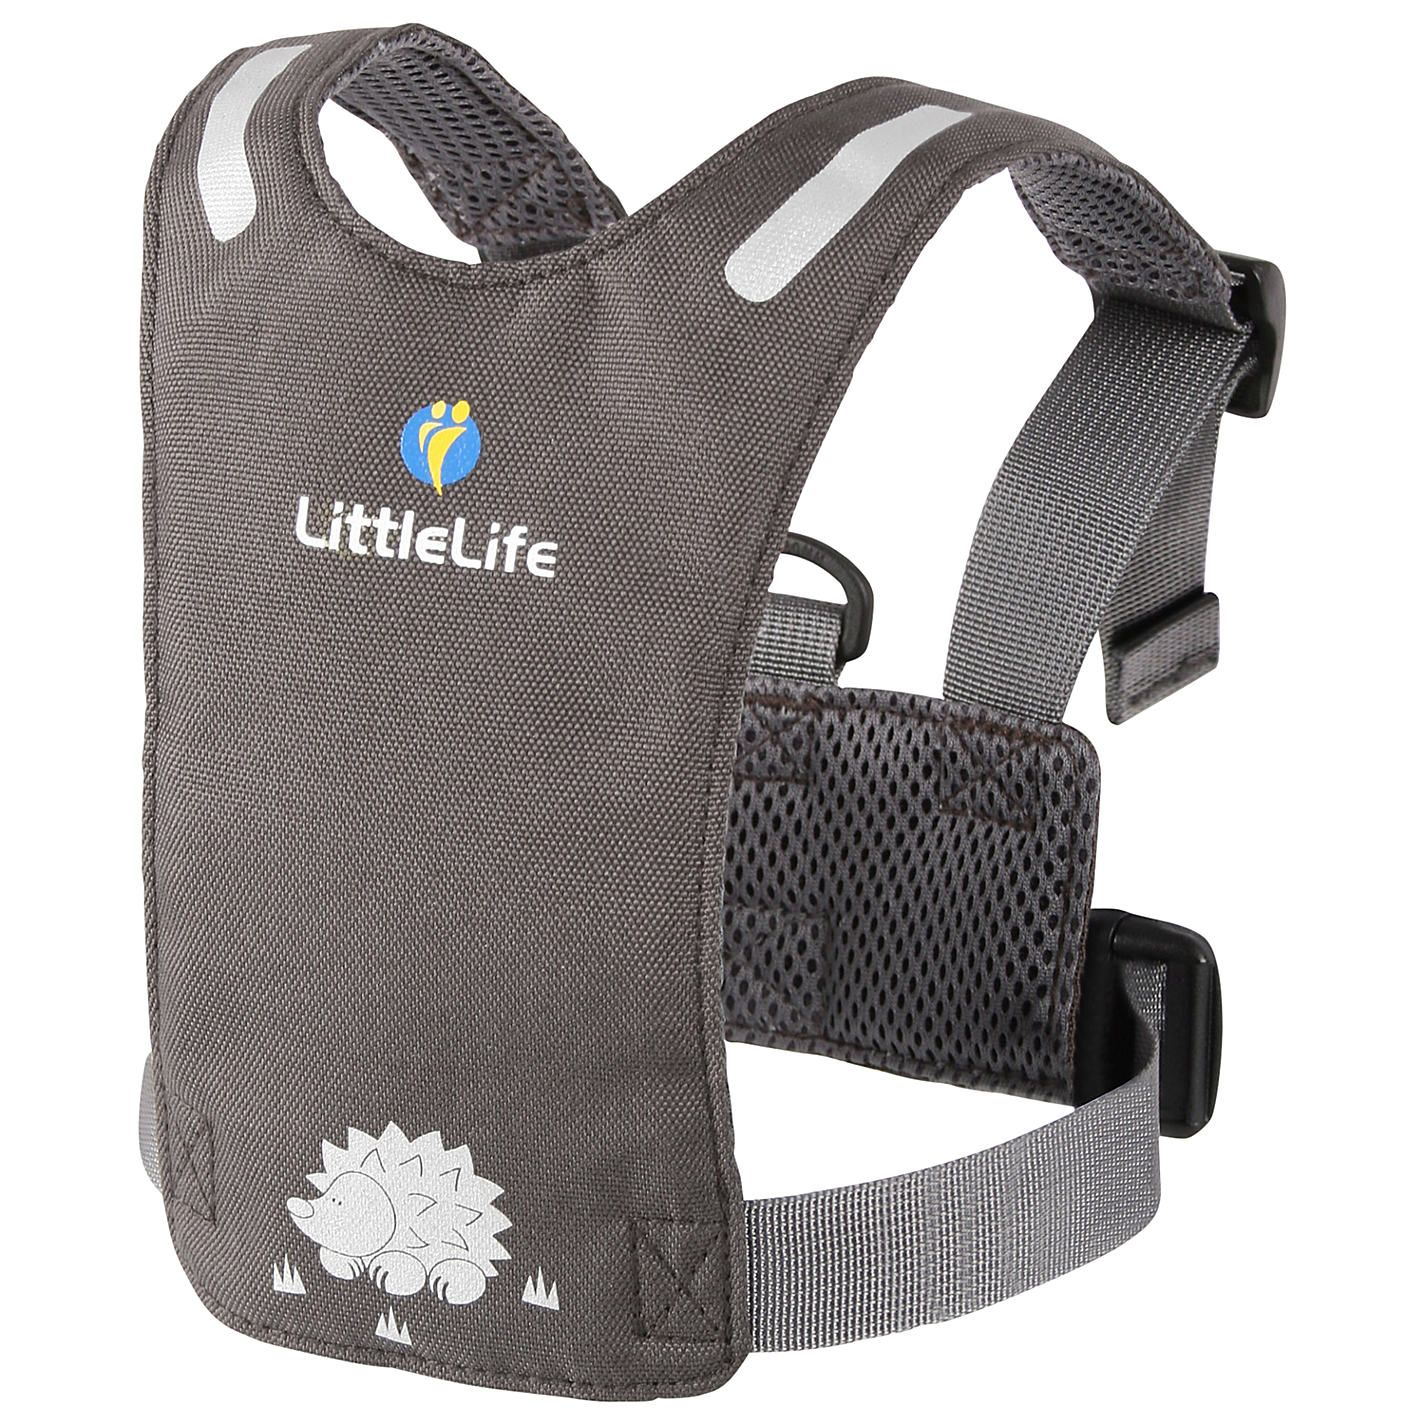 childrens safety harness Google Search Baby harness